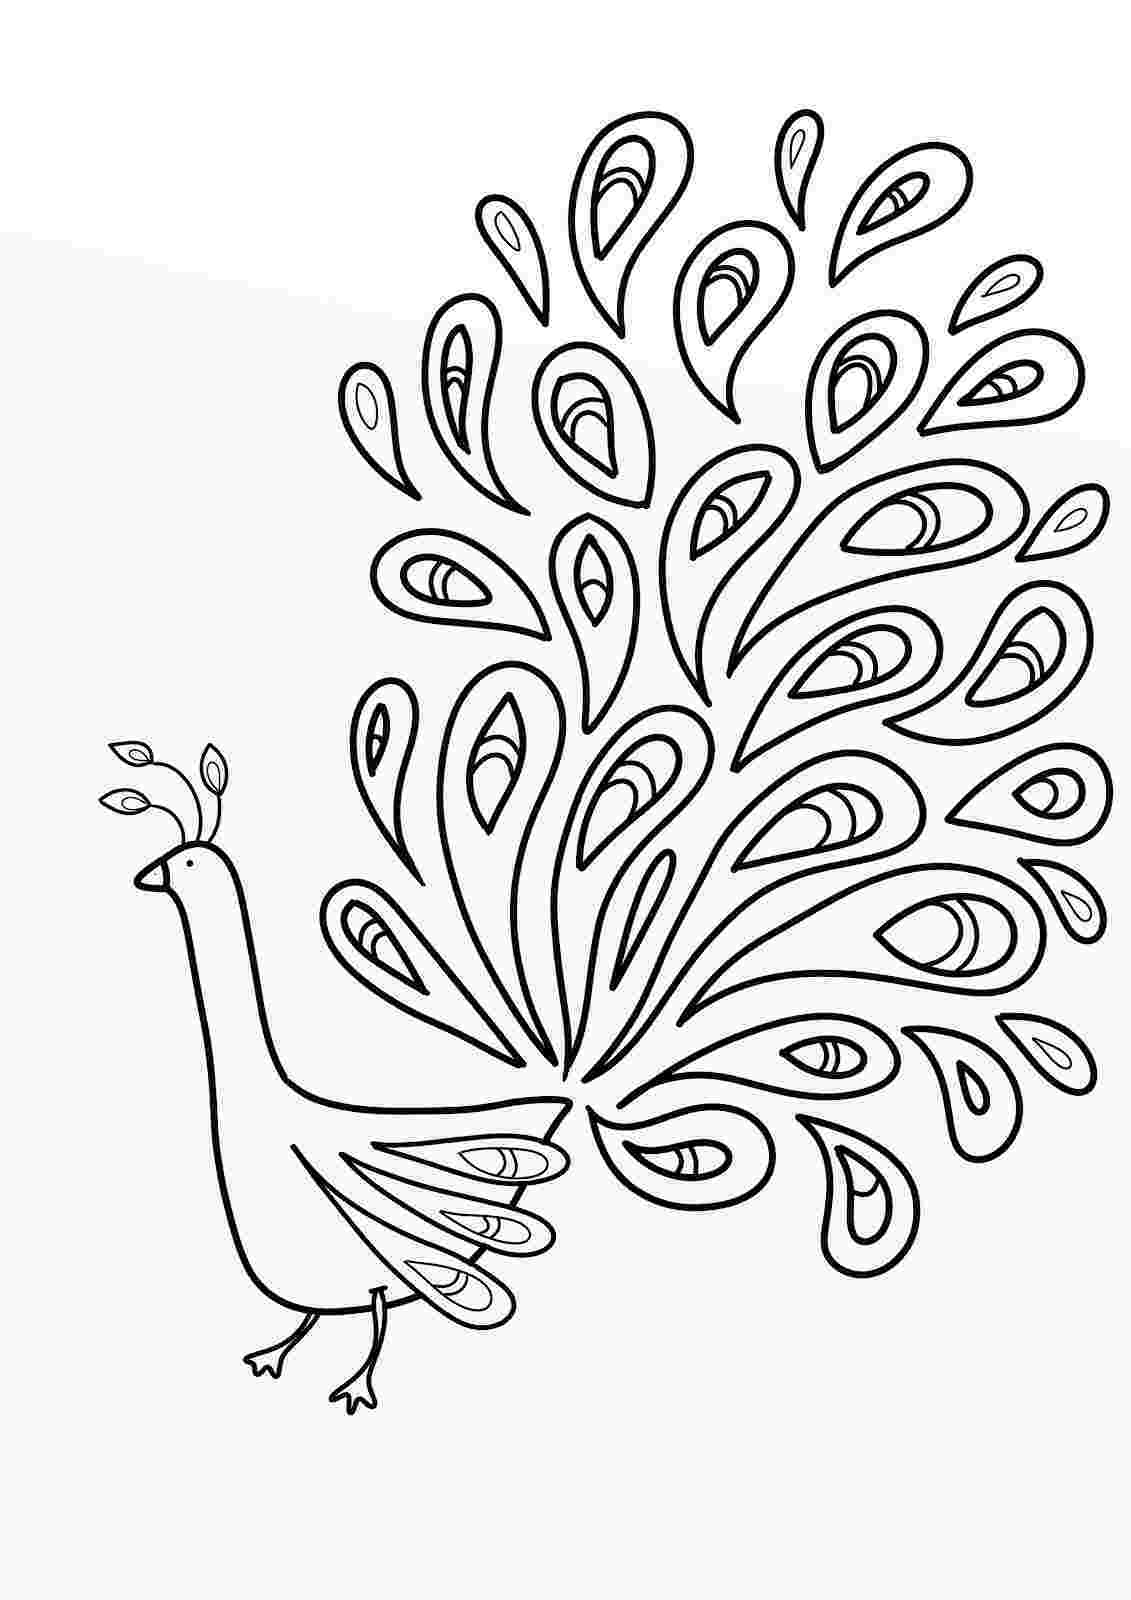 peacock pictures for colouring bird peacock coloring pages free printable coloring pages pictures colouring peacock for